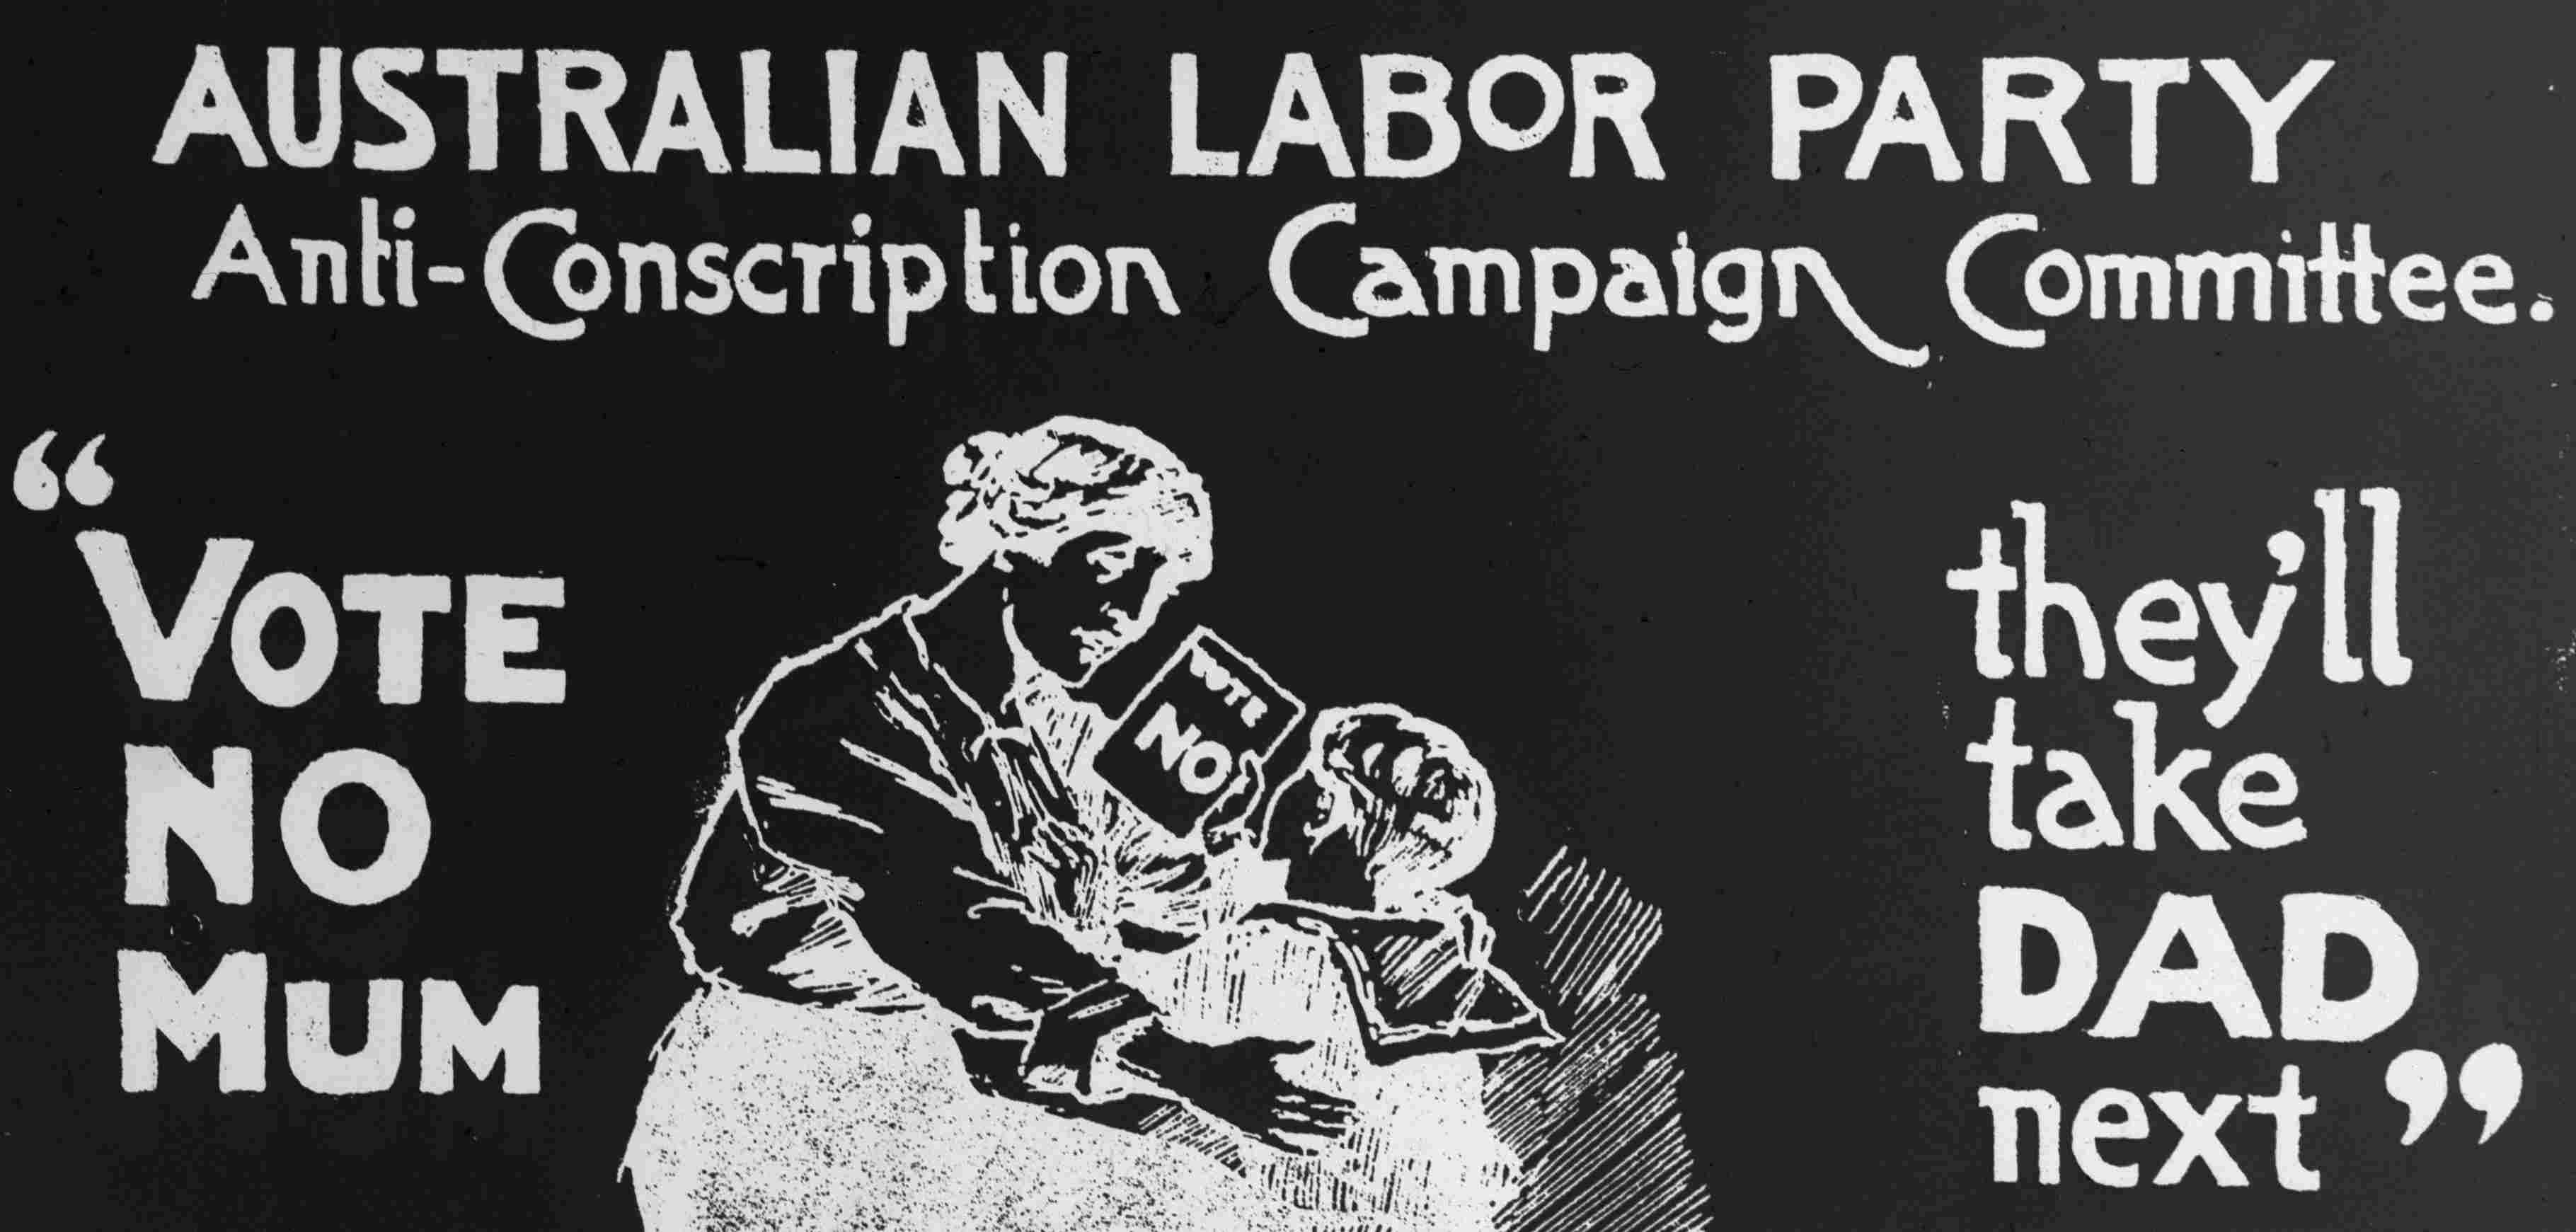 ALP Anti-Conscription Campaign Committee Poster 'Vote No Mum, They'll Take Dad Next'